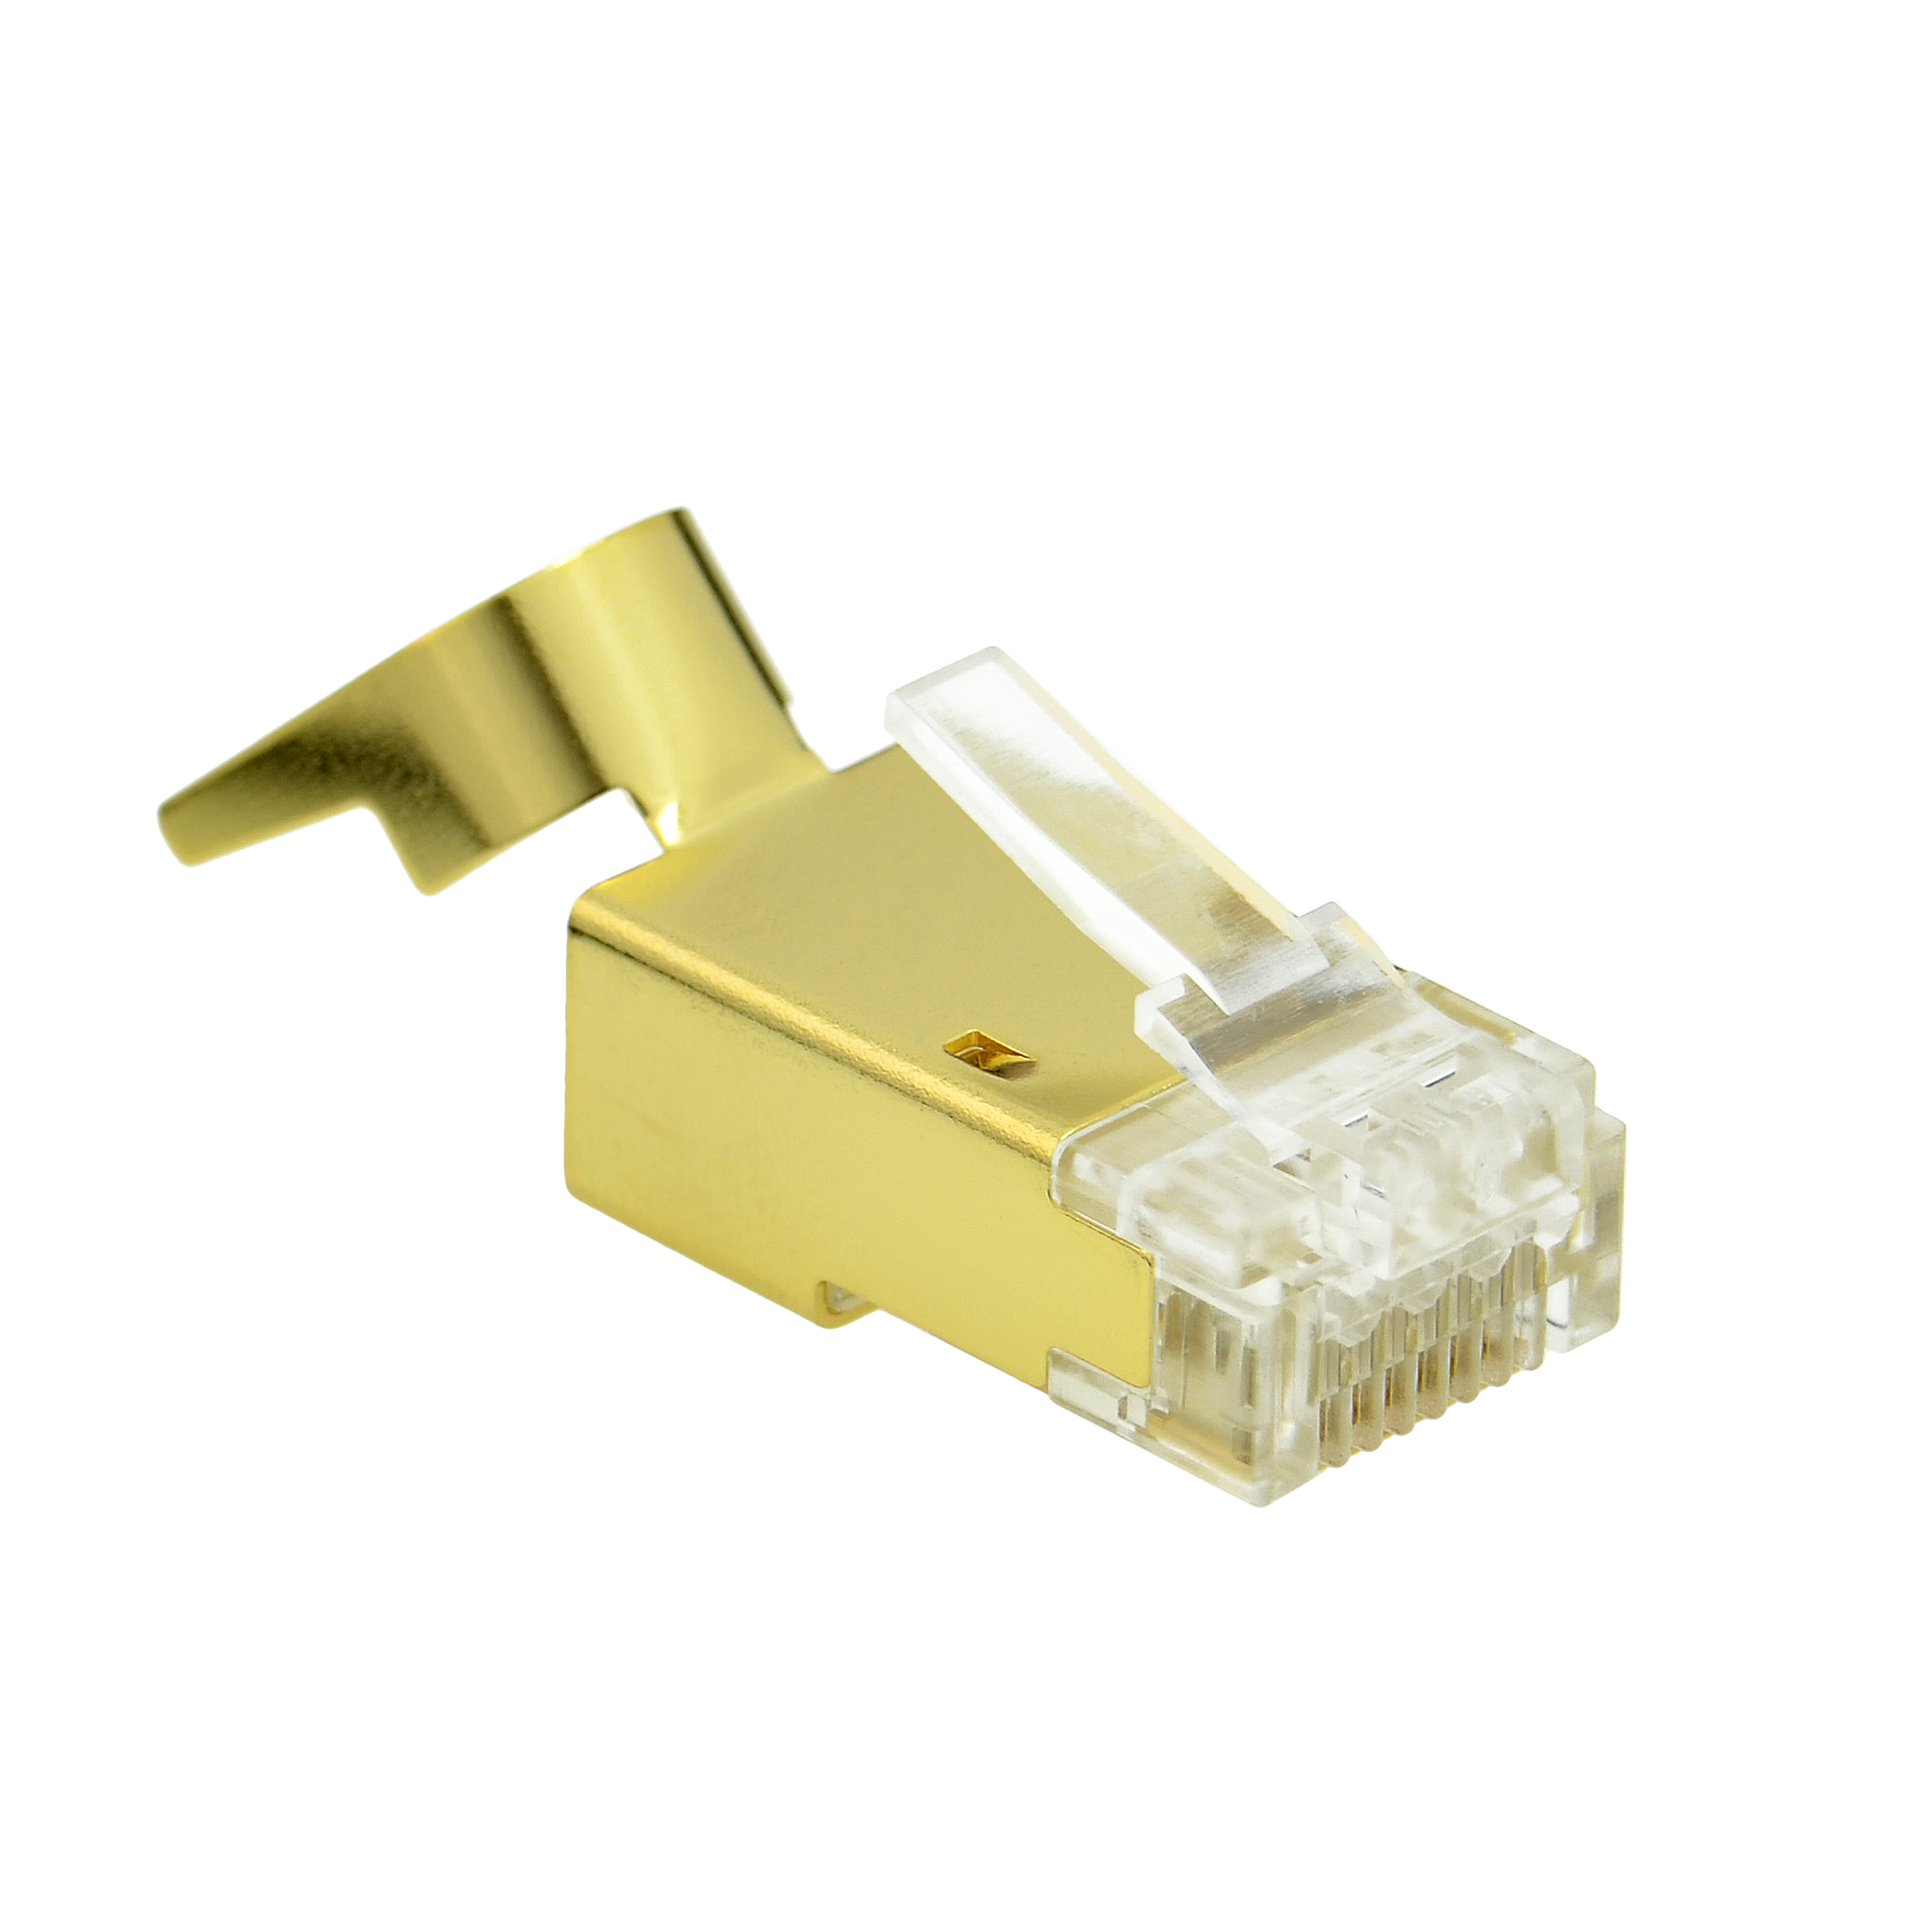 Shop New Cat7 Connector Gold Shielded Rj45 Plug For Jack Wiring Color Ethernet Cable 8p8c 50um 10 Pack Part 51p C7 10pk Colors